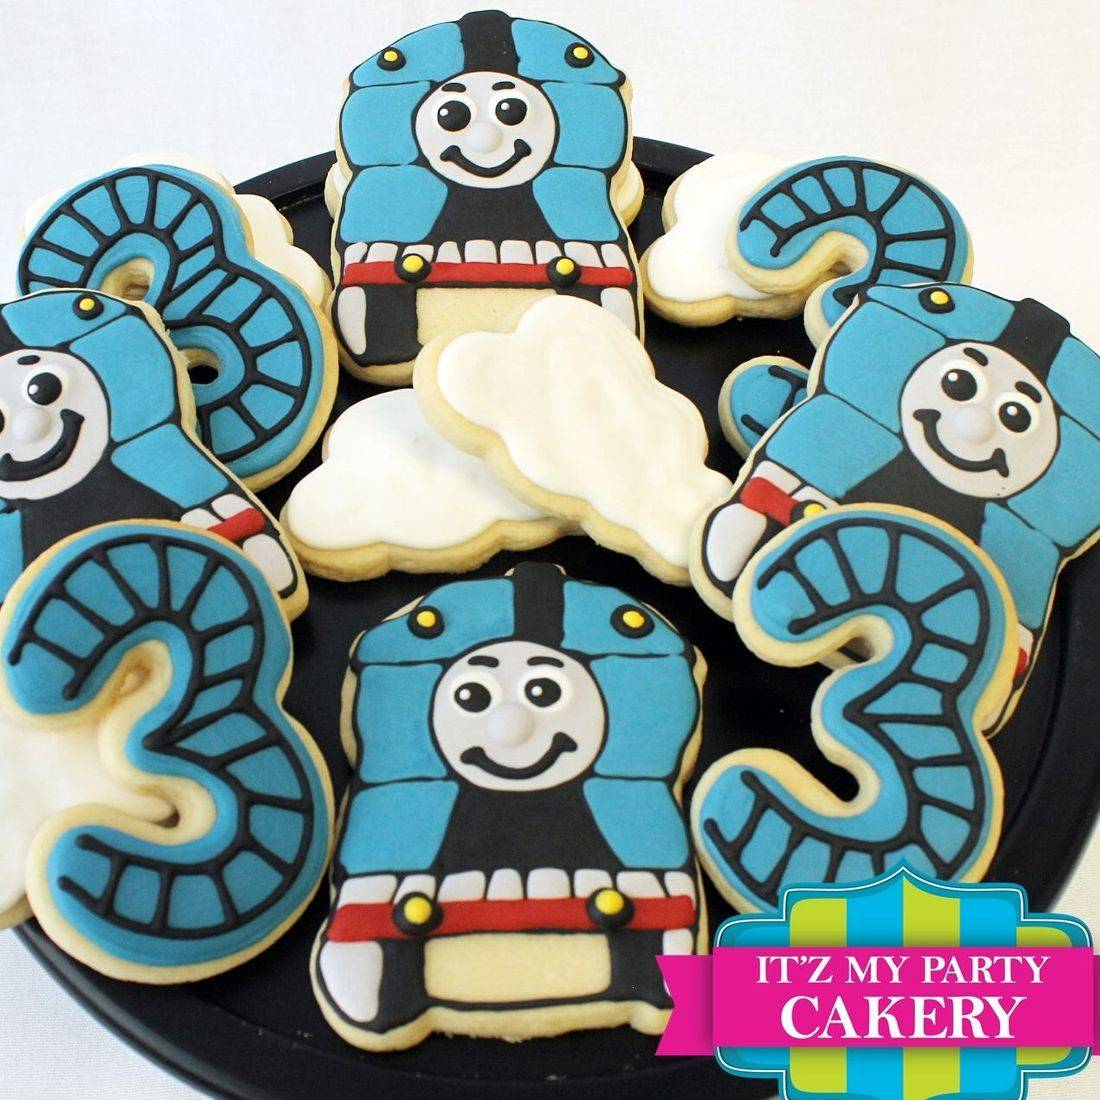 Thomas the Train cookies Milwaukee